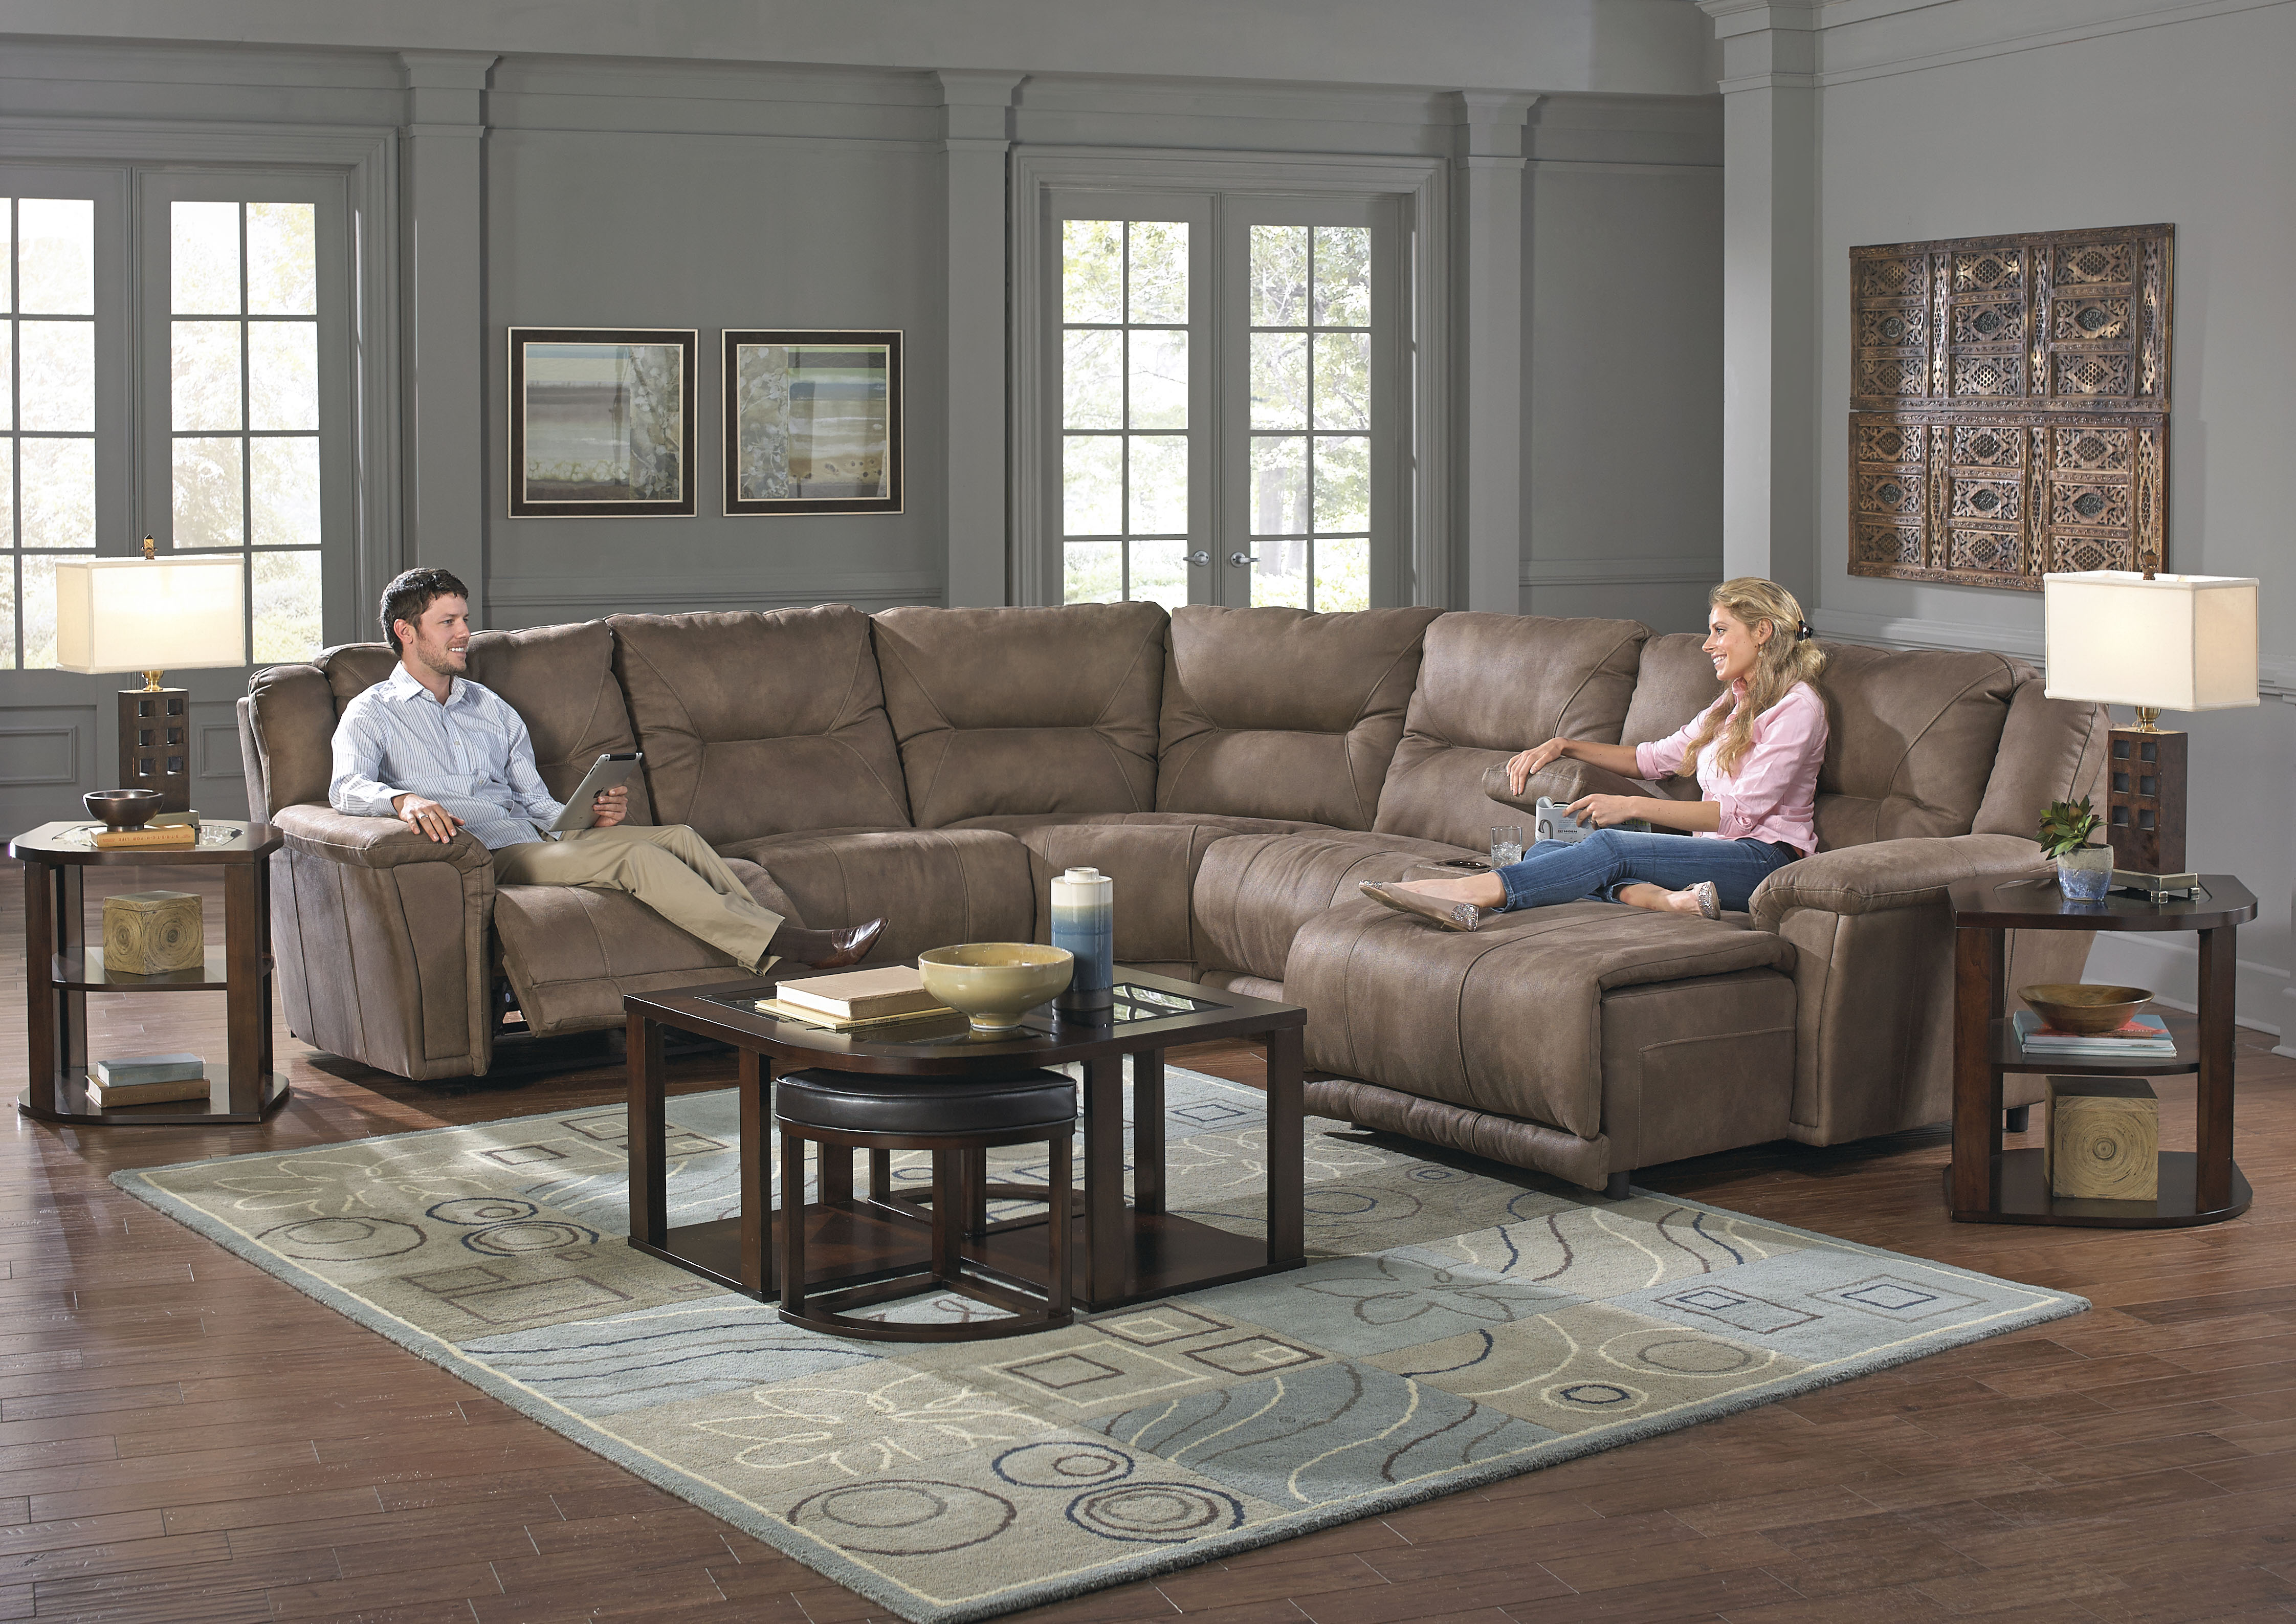 Montgomery Sectional in Timber · Montgomery Sectional in Cement : catnapper sectional sofa - Sectionals, Sofas & Couches